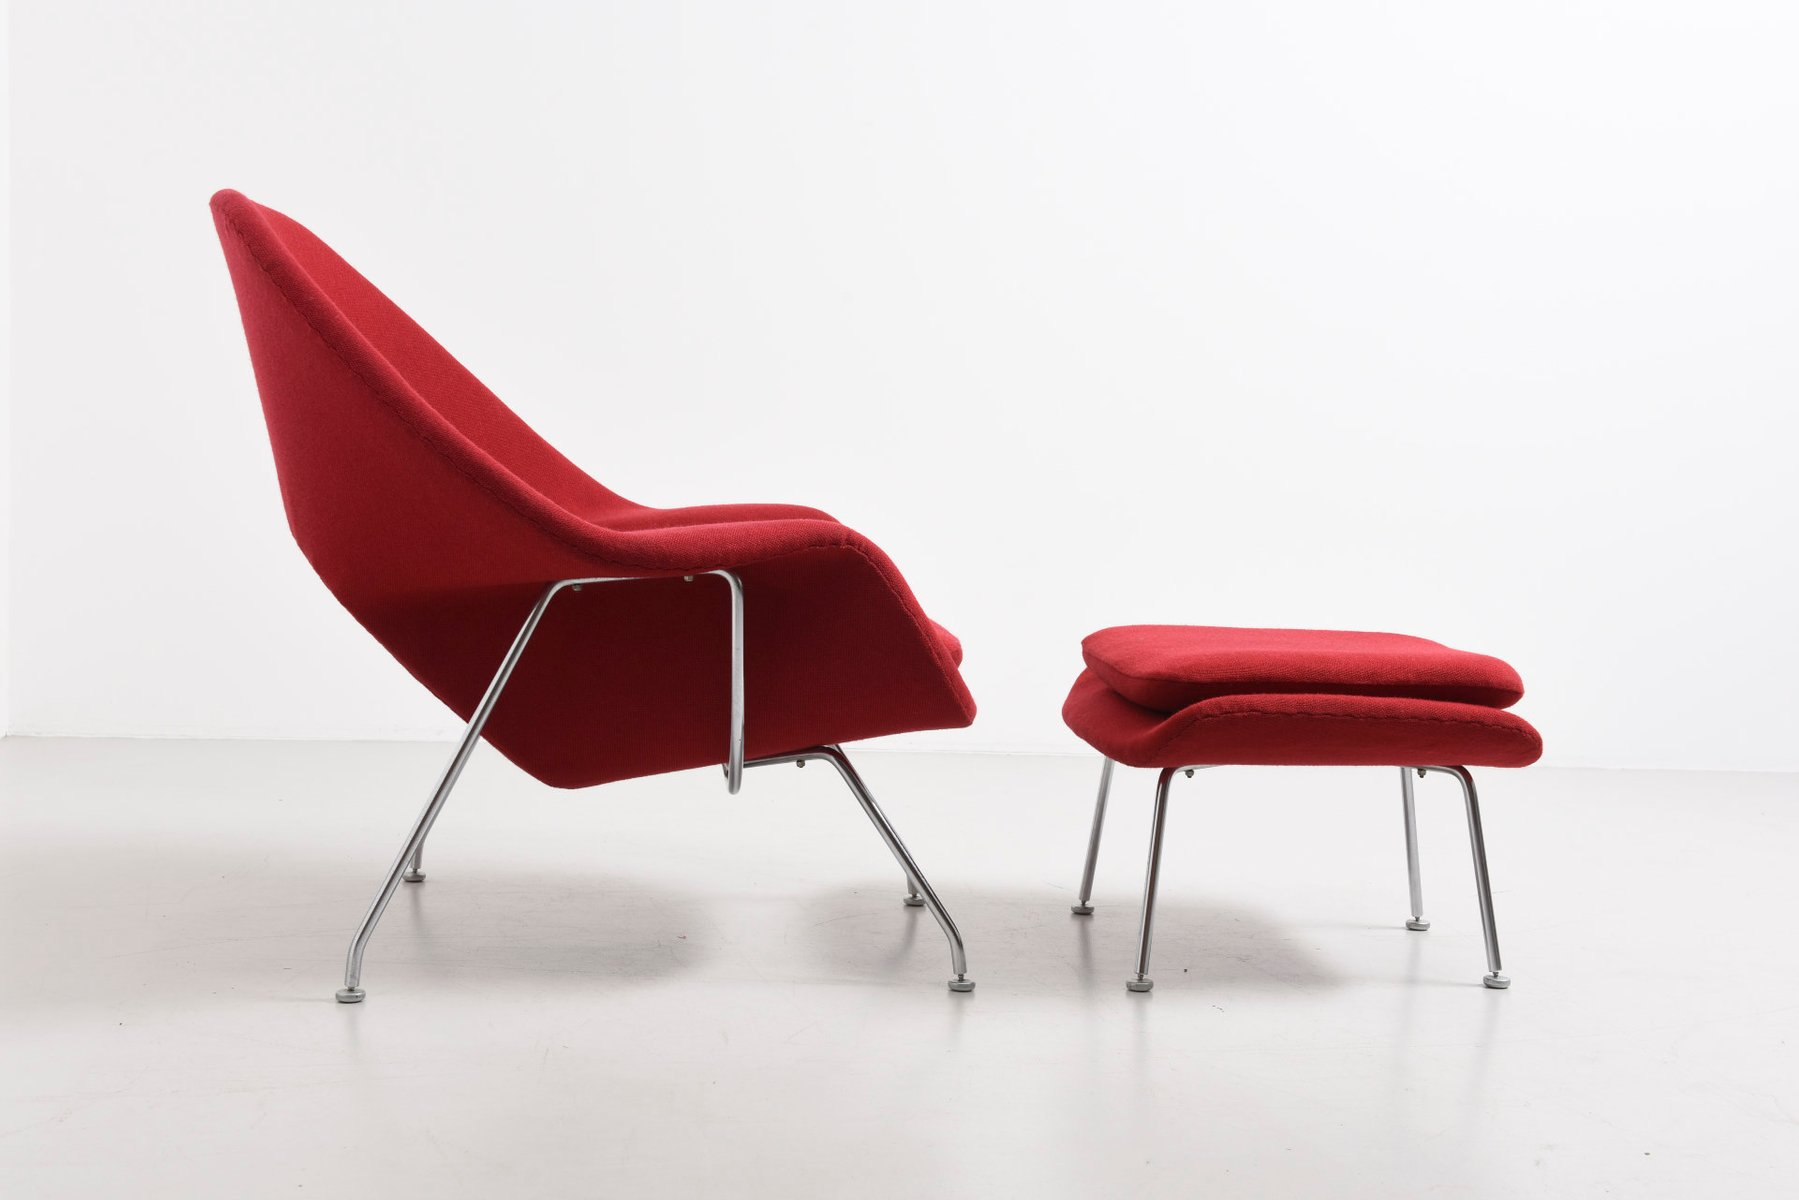 Knoll womb chair - Vintage Womb Chair With Ottoman By Eero Saarinen For Knoll